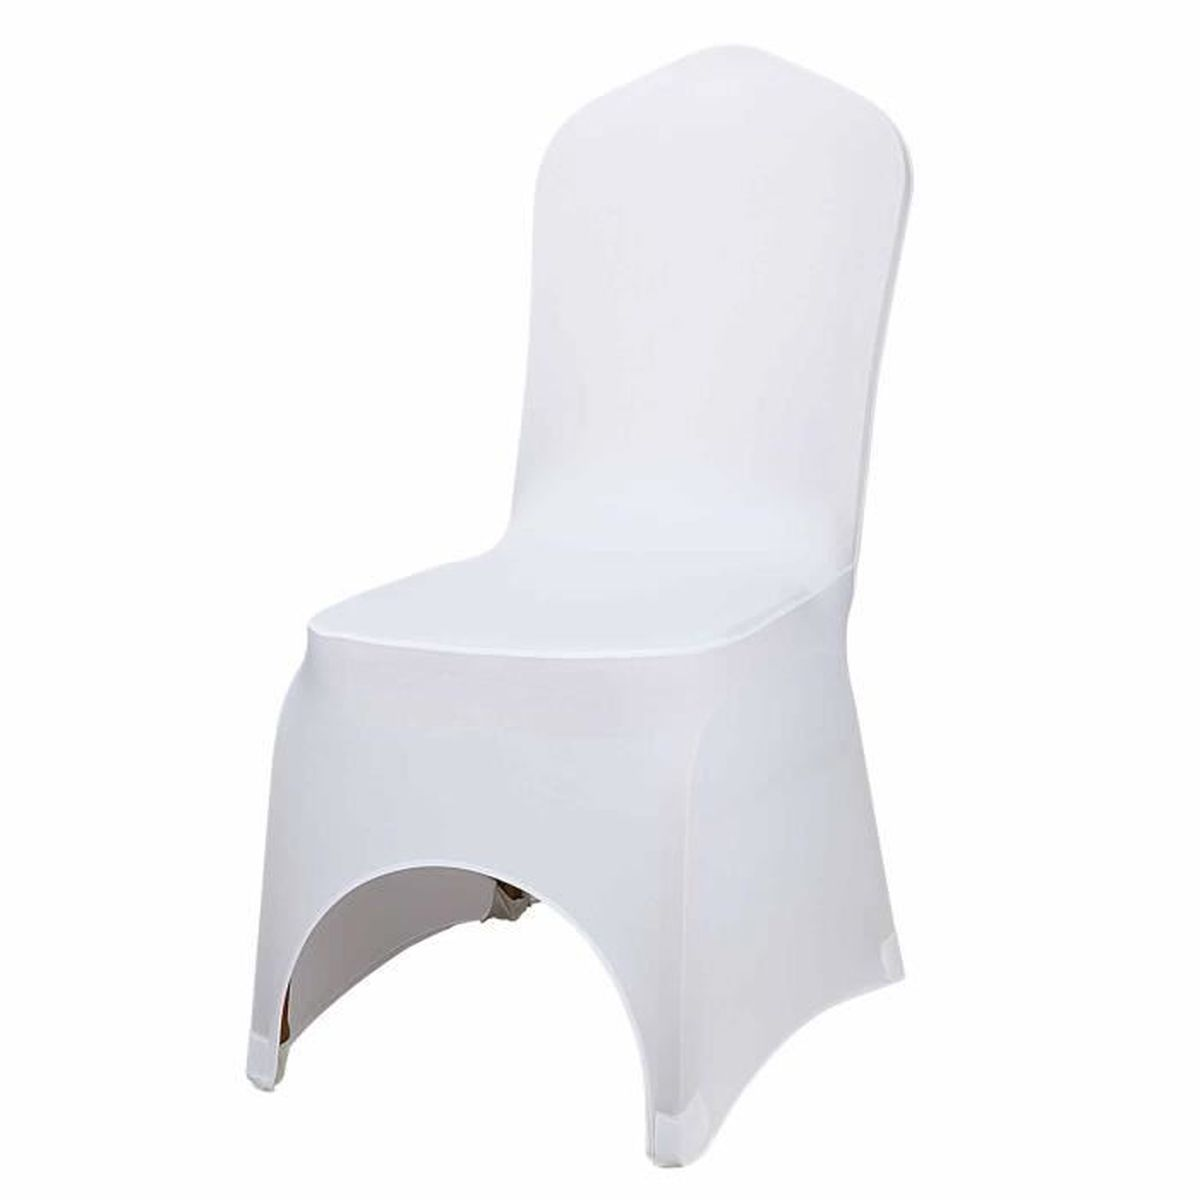 Chaise blanche chaise blanche et noire reva with chaise for Chaise cuisine blanche